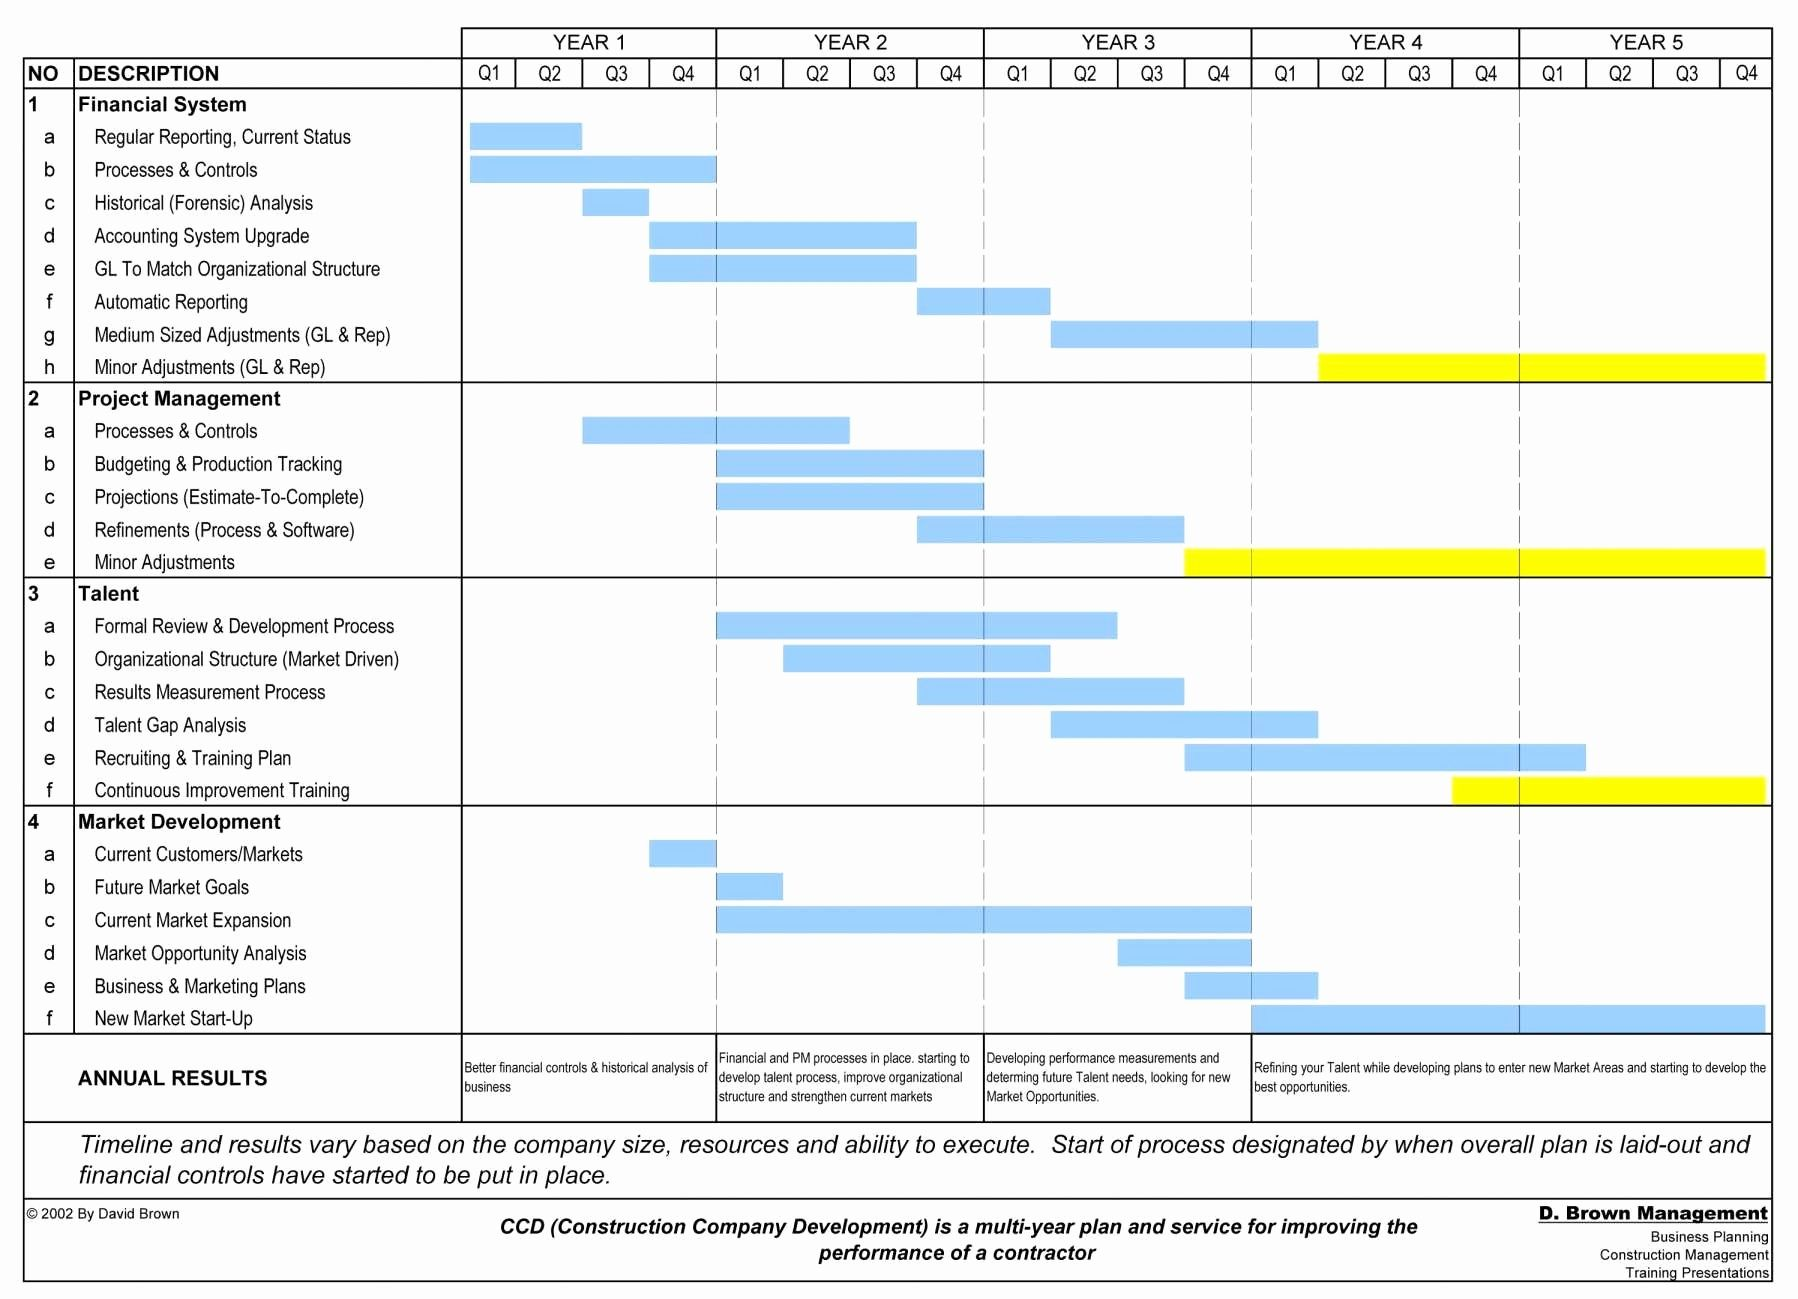 Excel Gantt Chart With Conditional Formatting